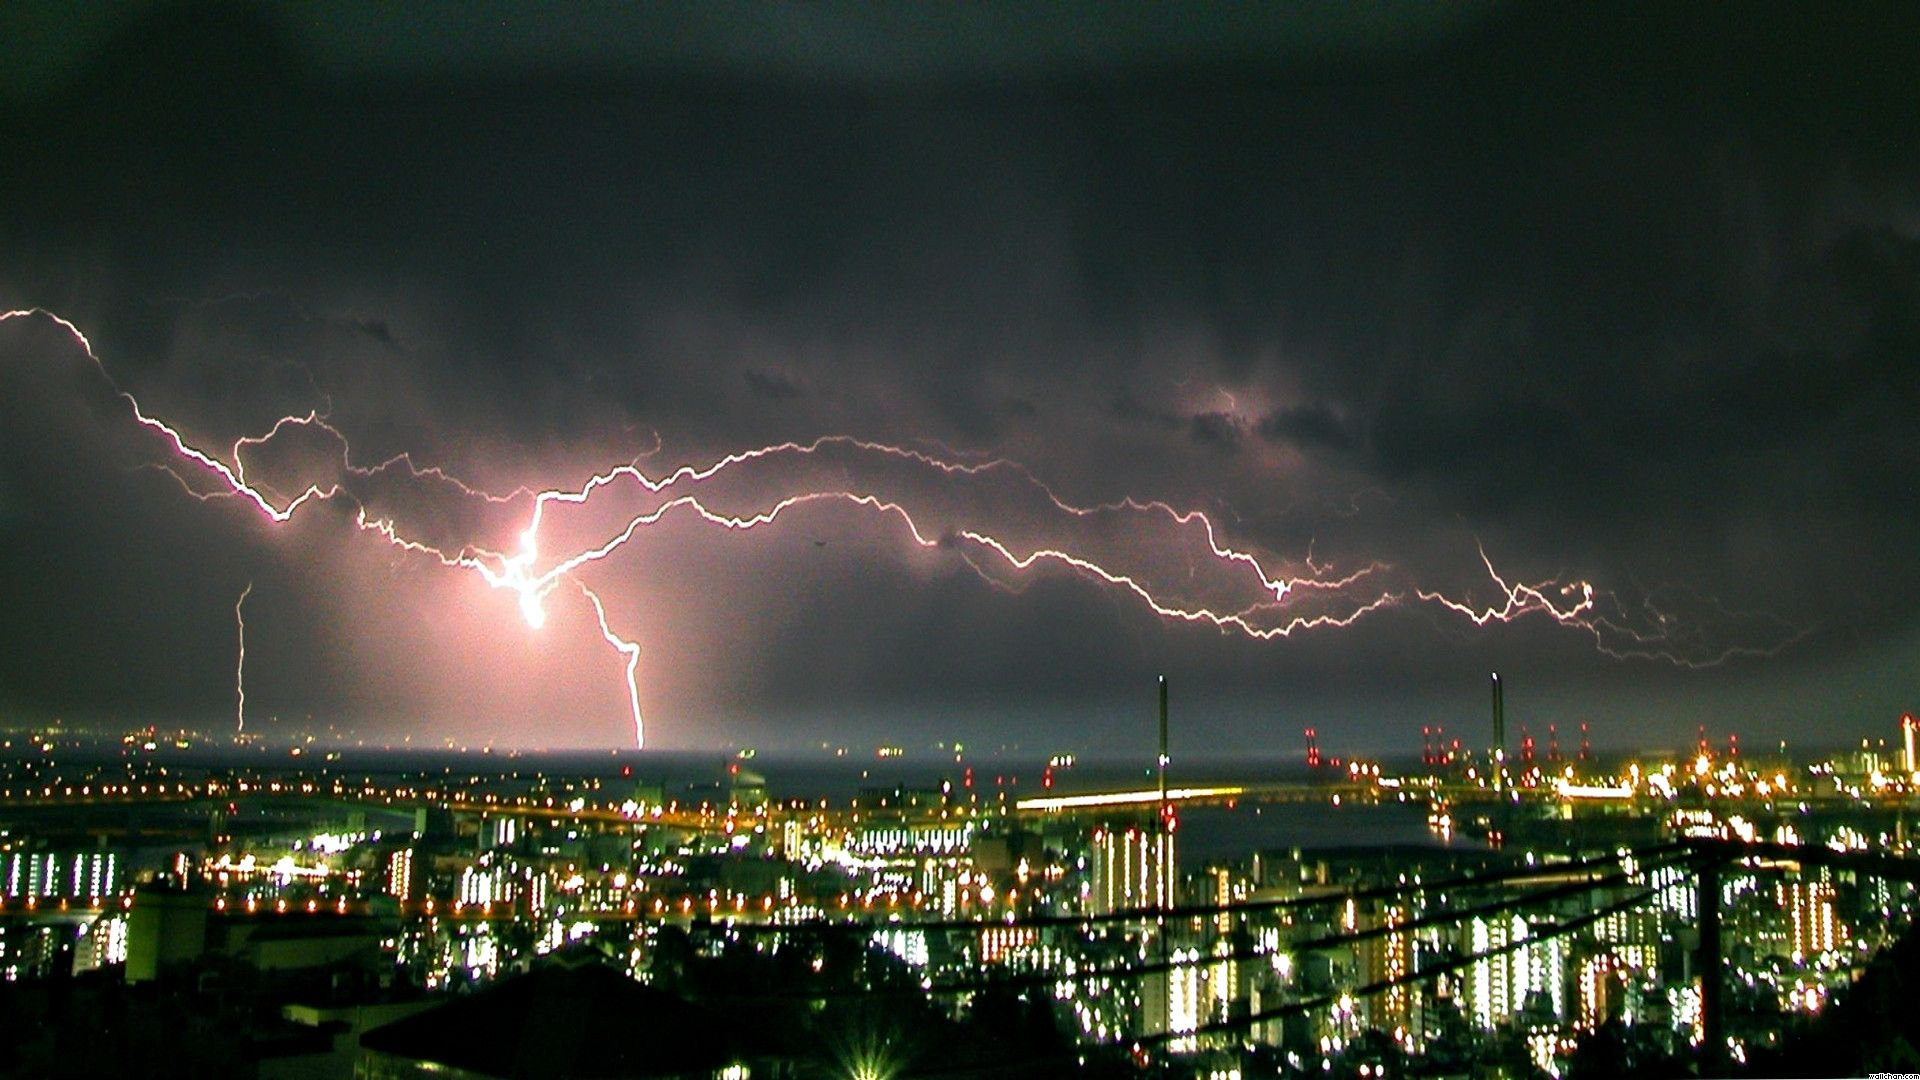 Wallpaperwiki Real Lightning Storm Background PIC WPD005416